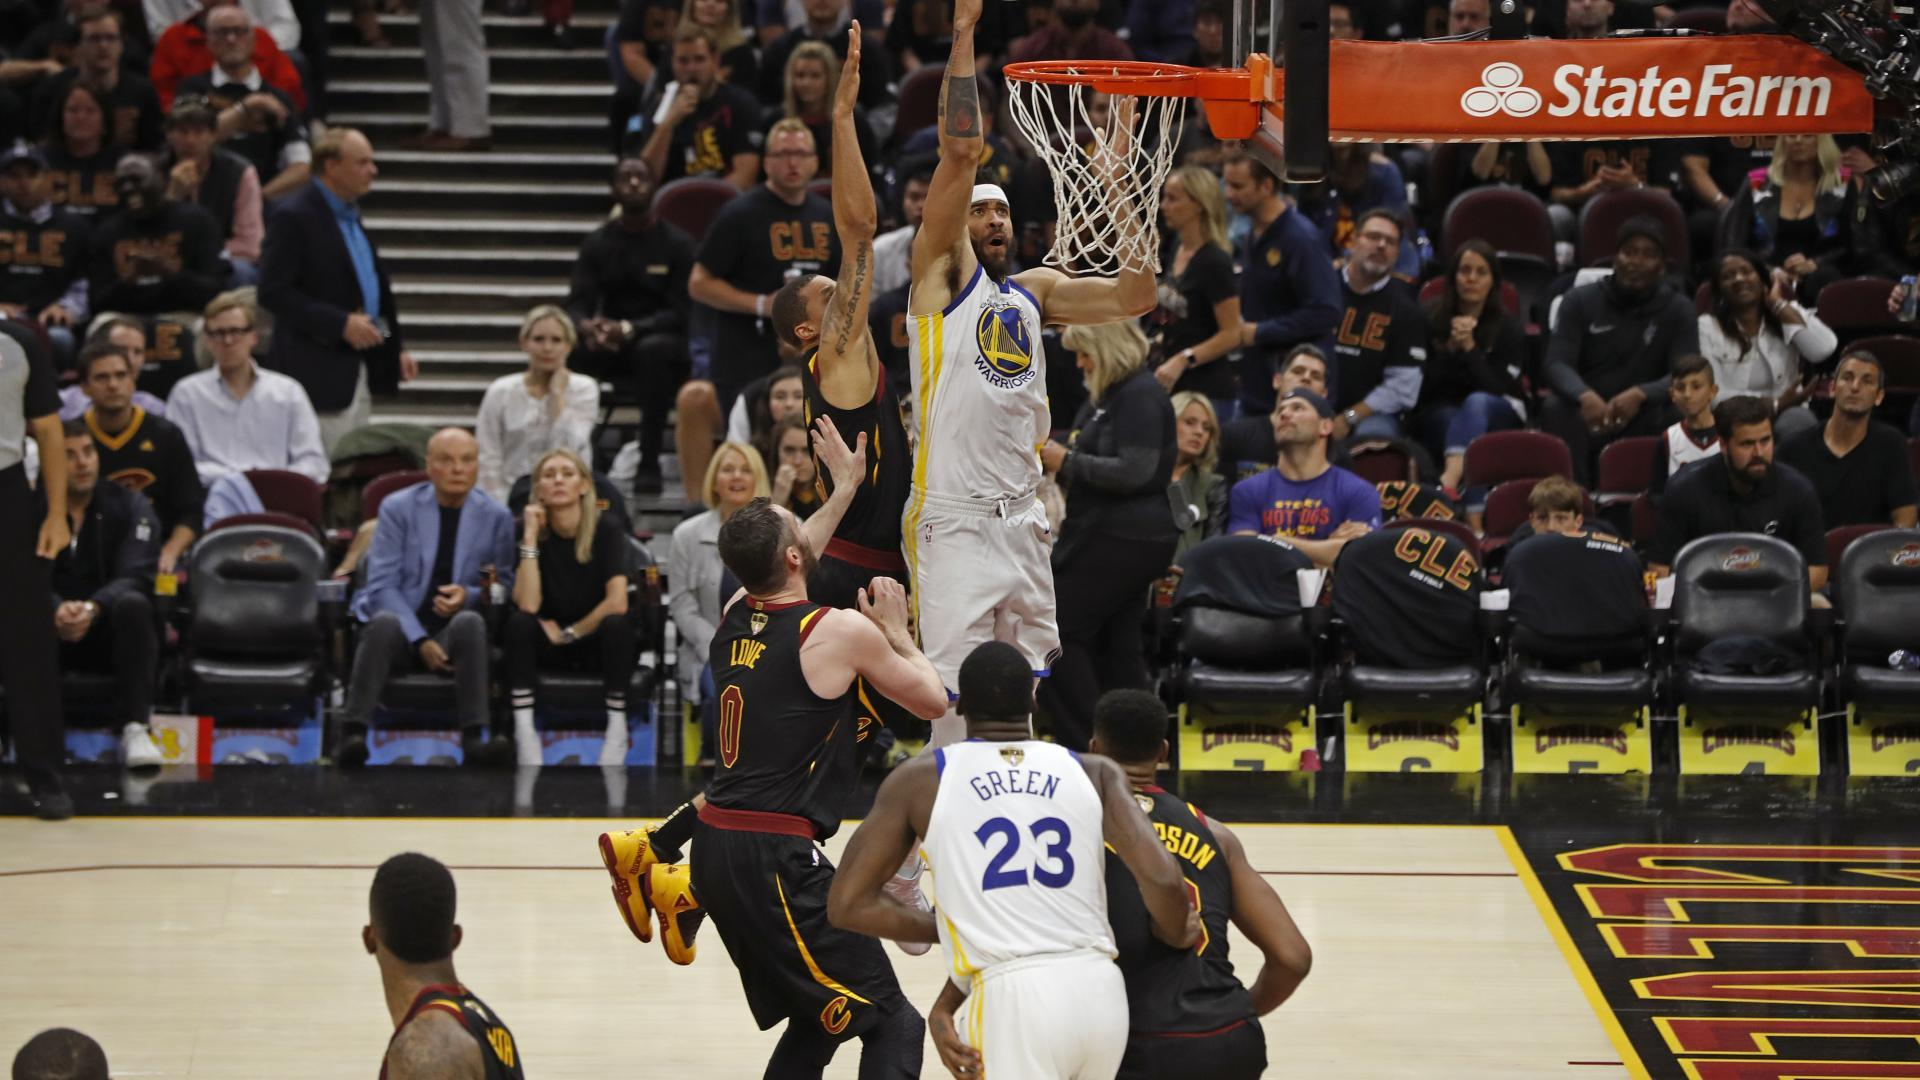 Kevin Durant's heroics against Cavaliers pull Warriors to brink of championship repeat